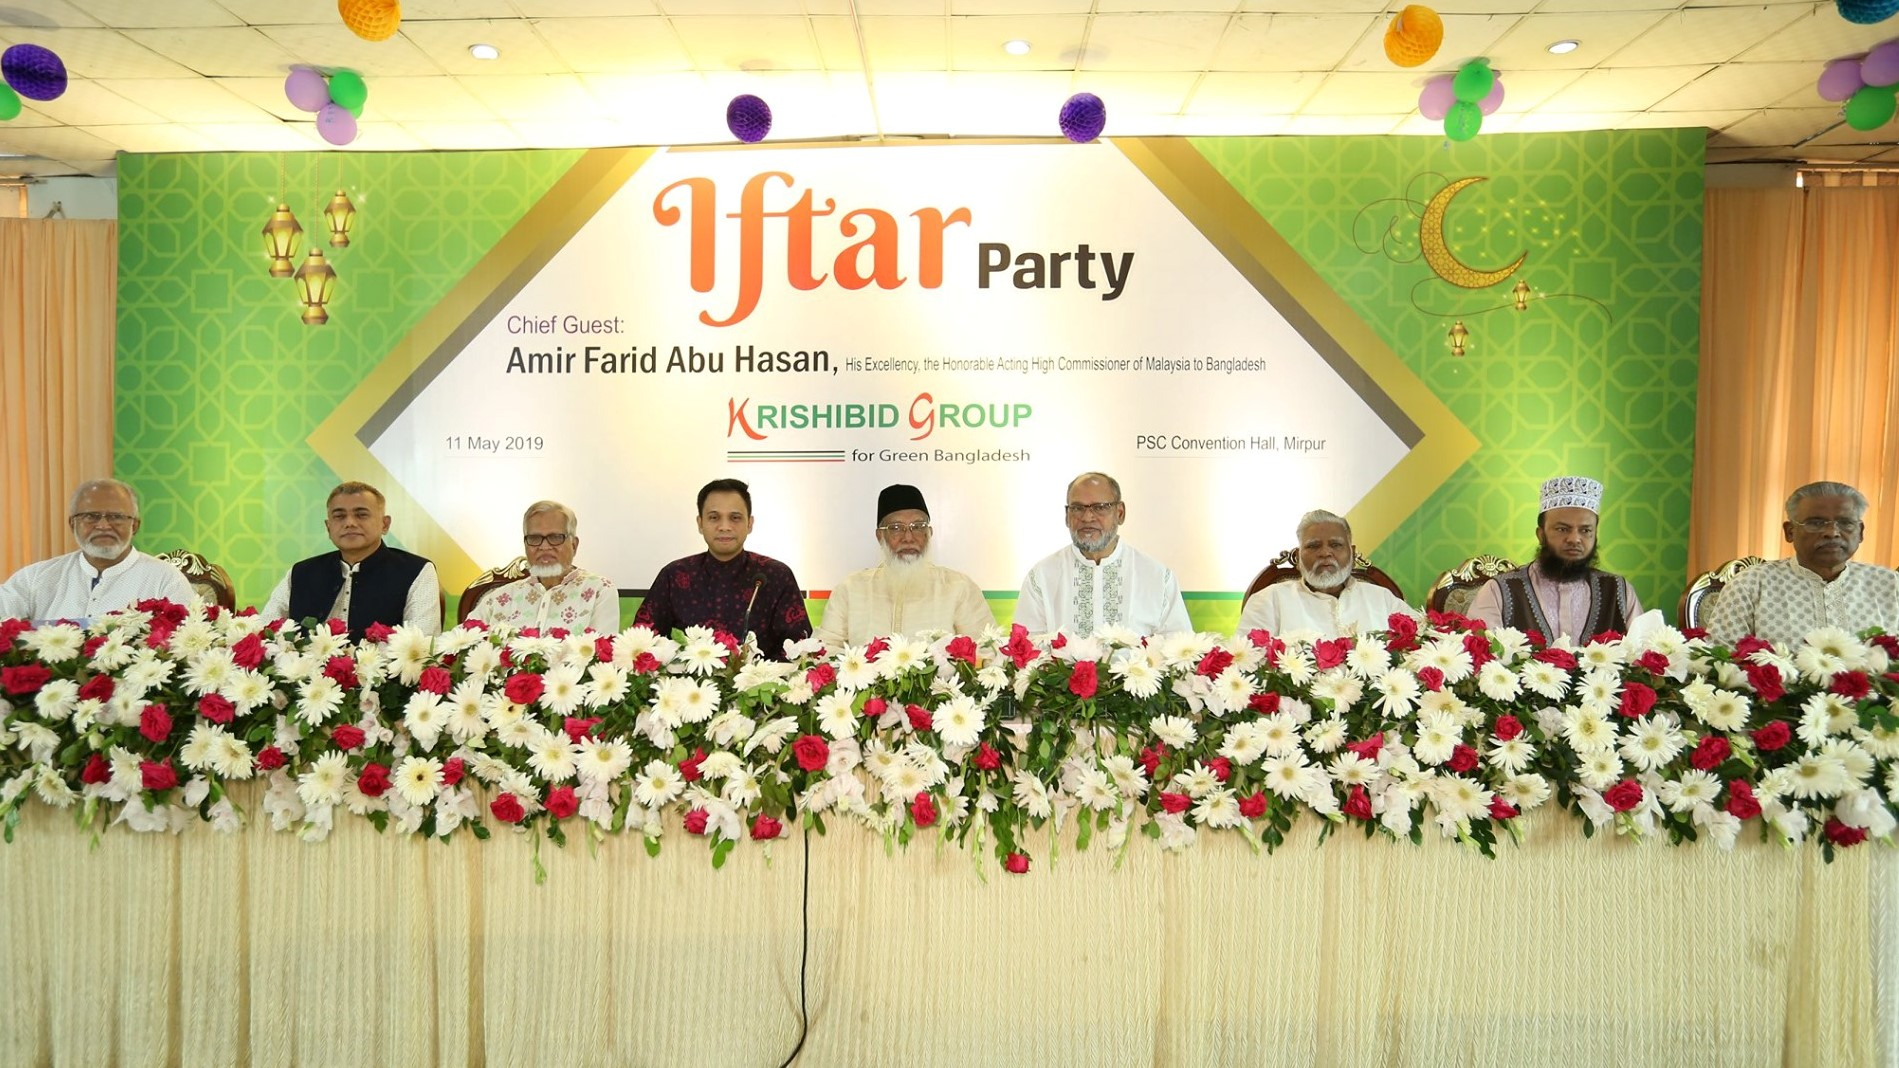 Iftar Party of Krishibid Group at PSC Convention hall Mirpur